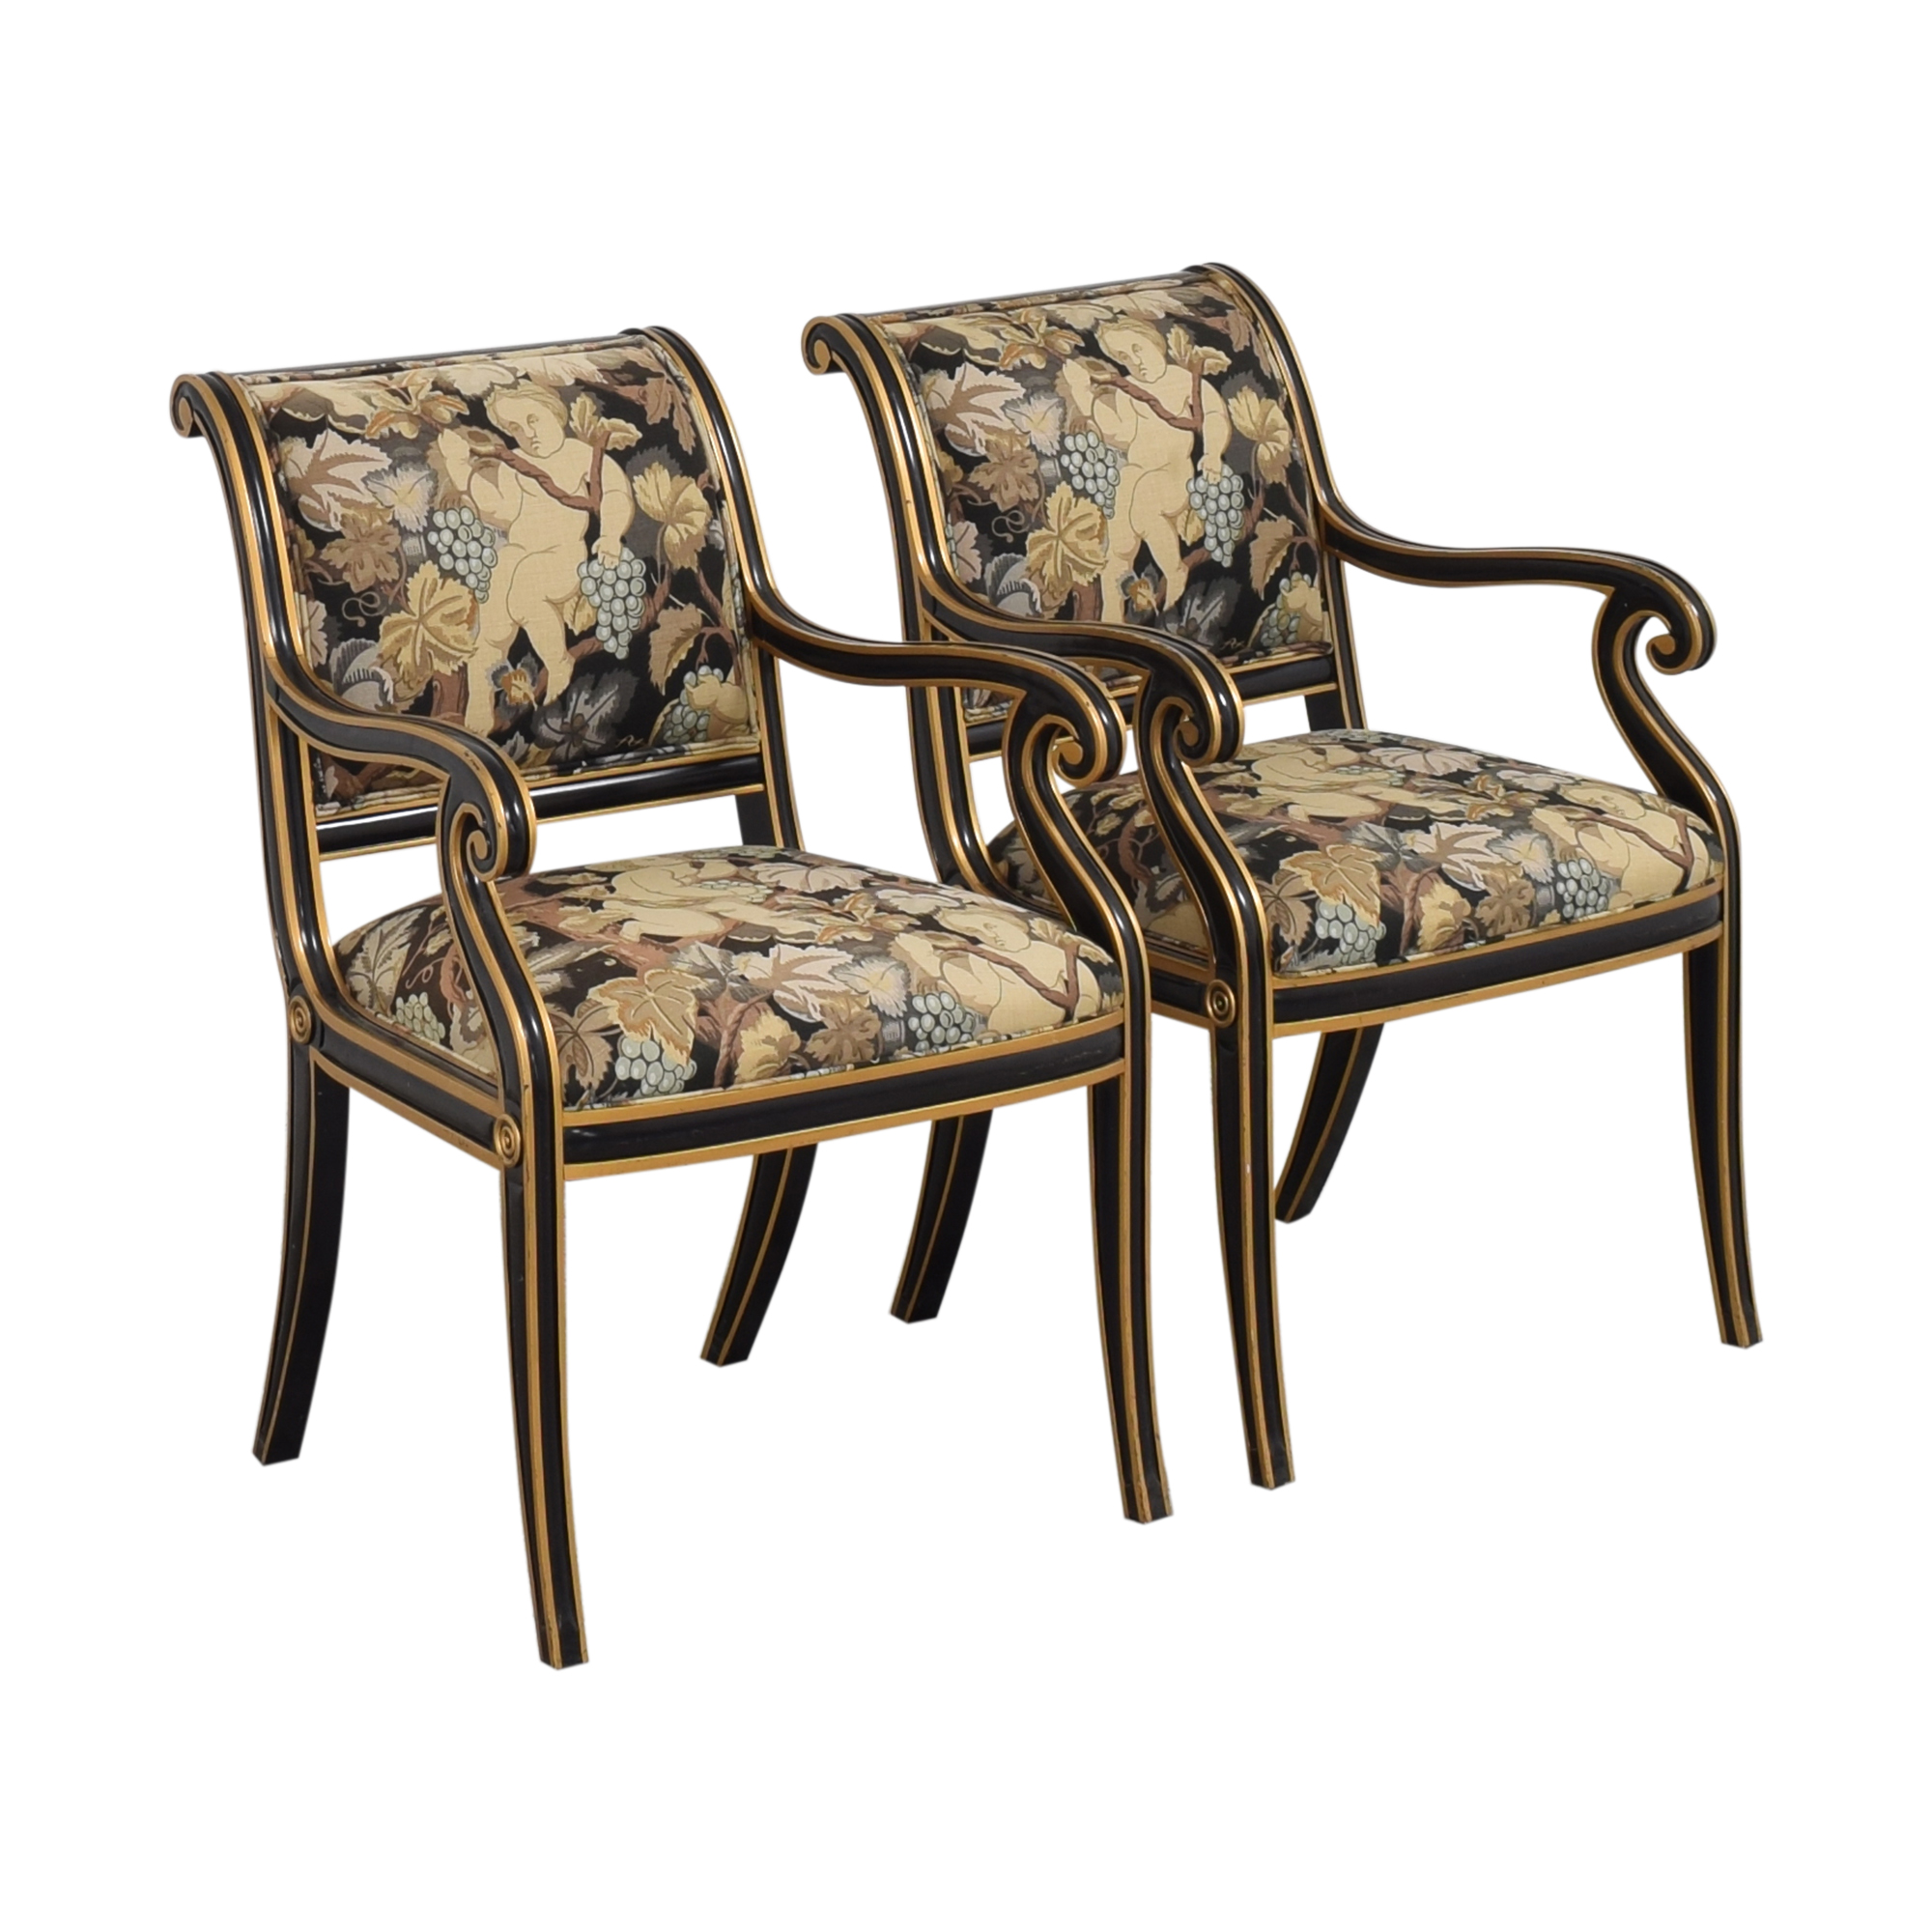 Councill Councill Floral Scroll Dining Arm Chairs ct